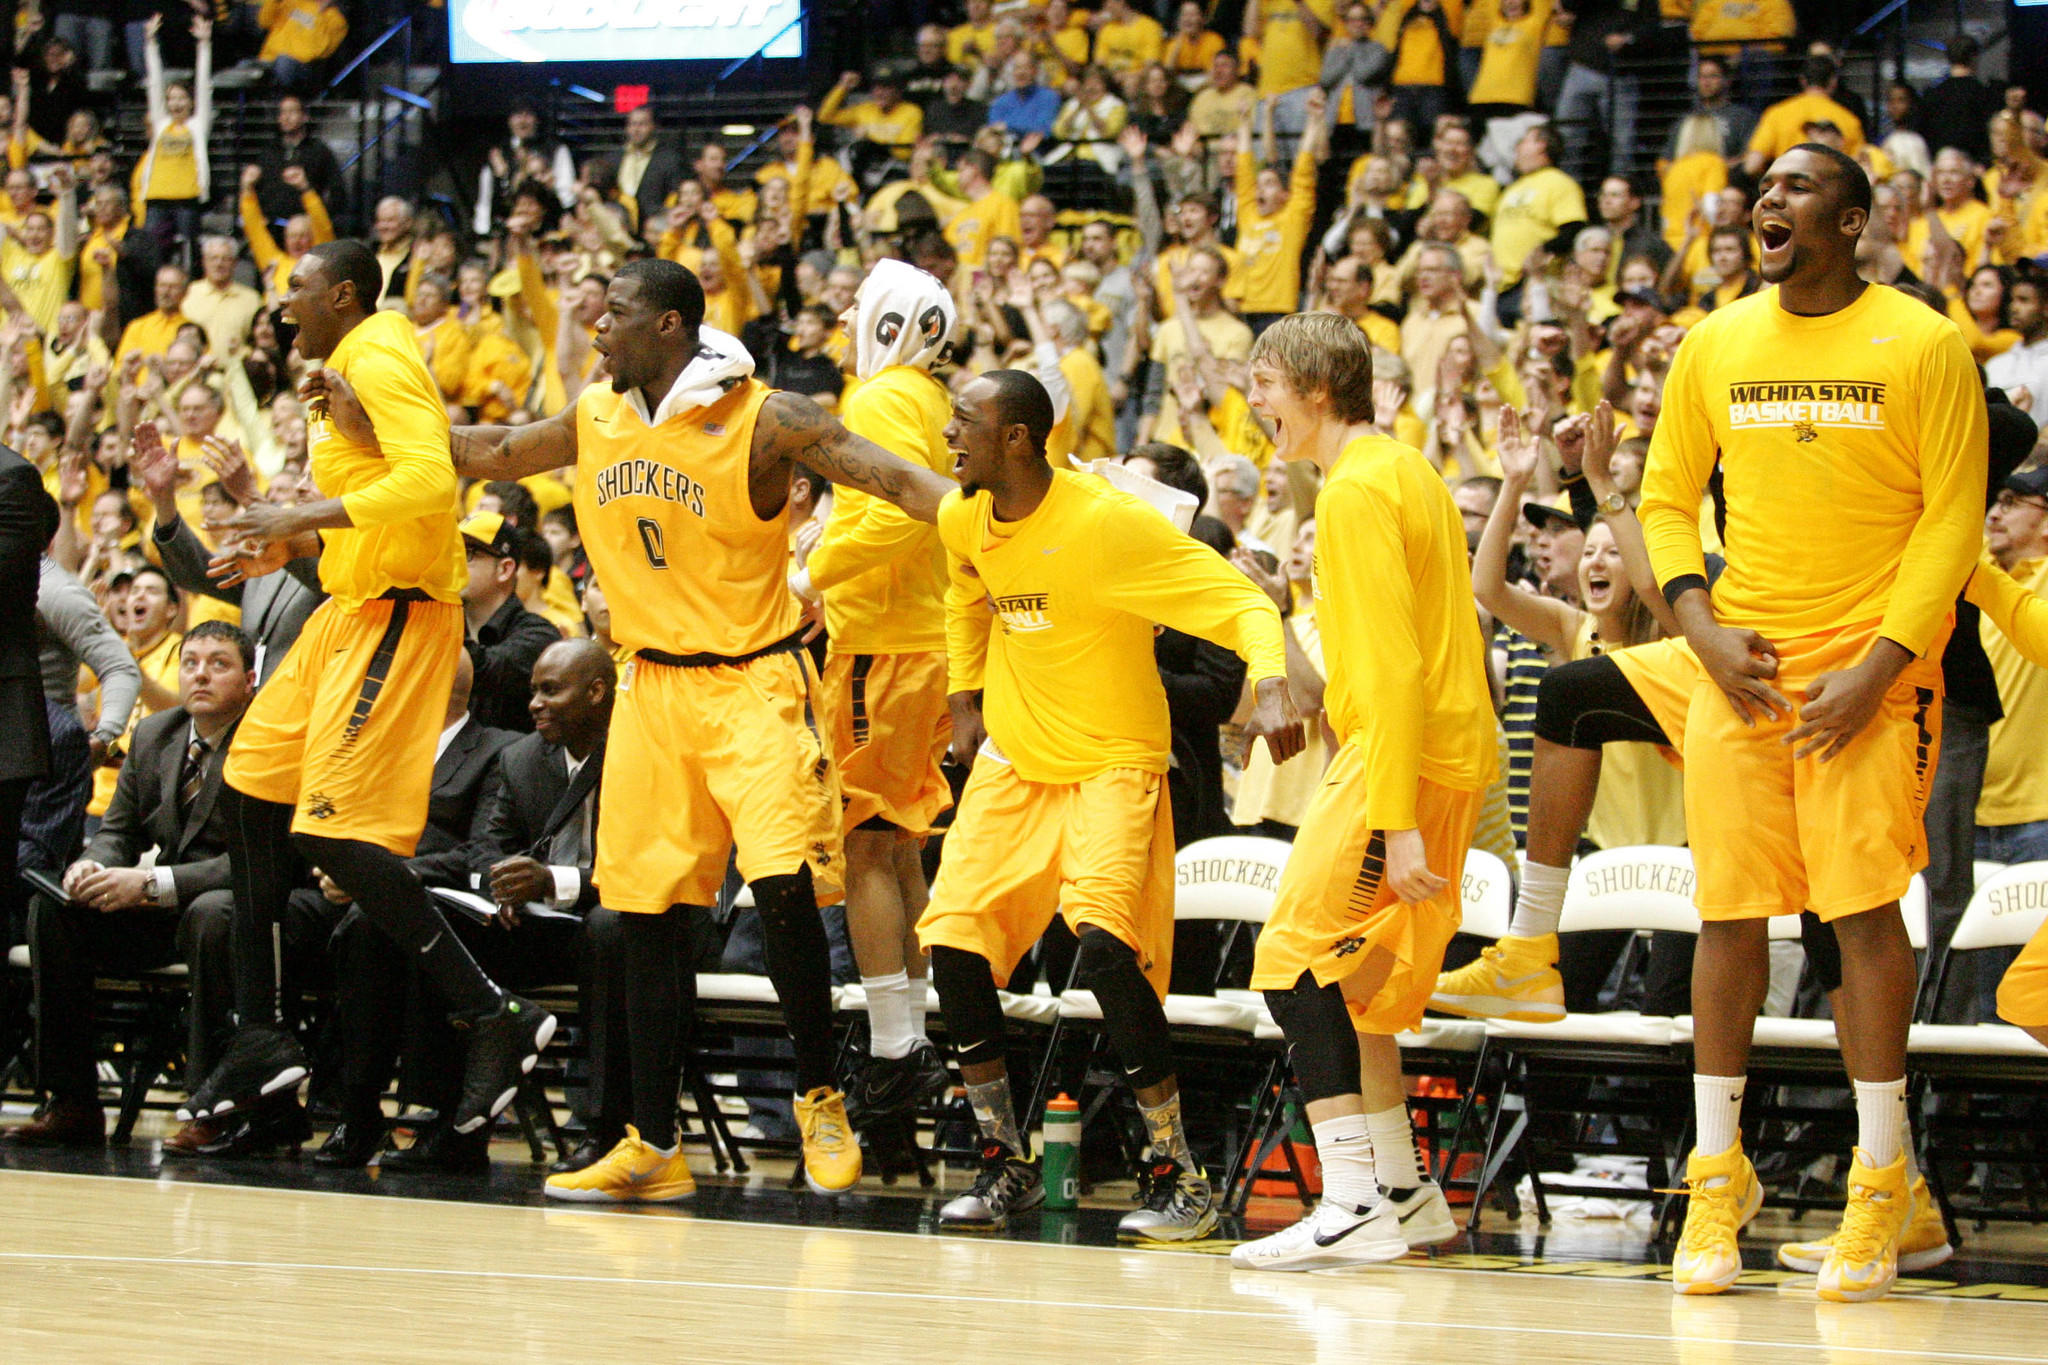 Wichita State players celebrate a basket late in a 83-54 win against Drake.